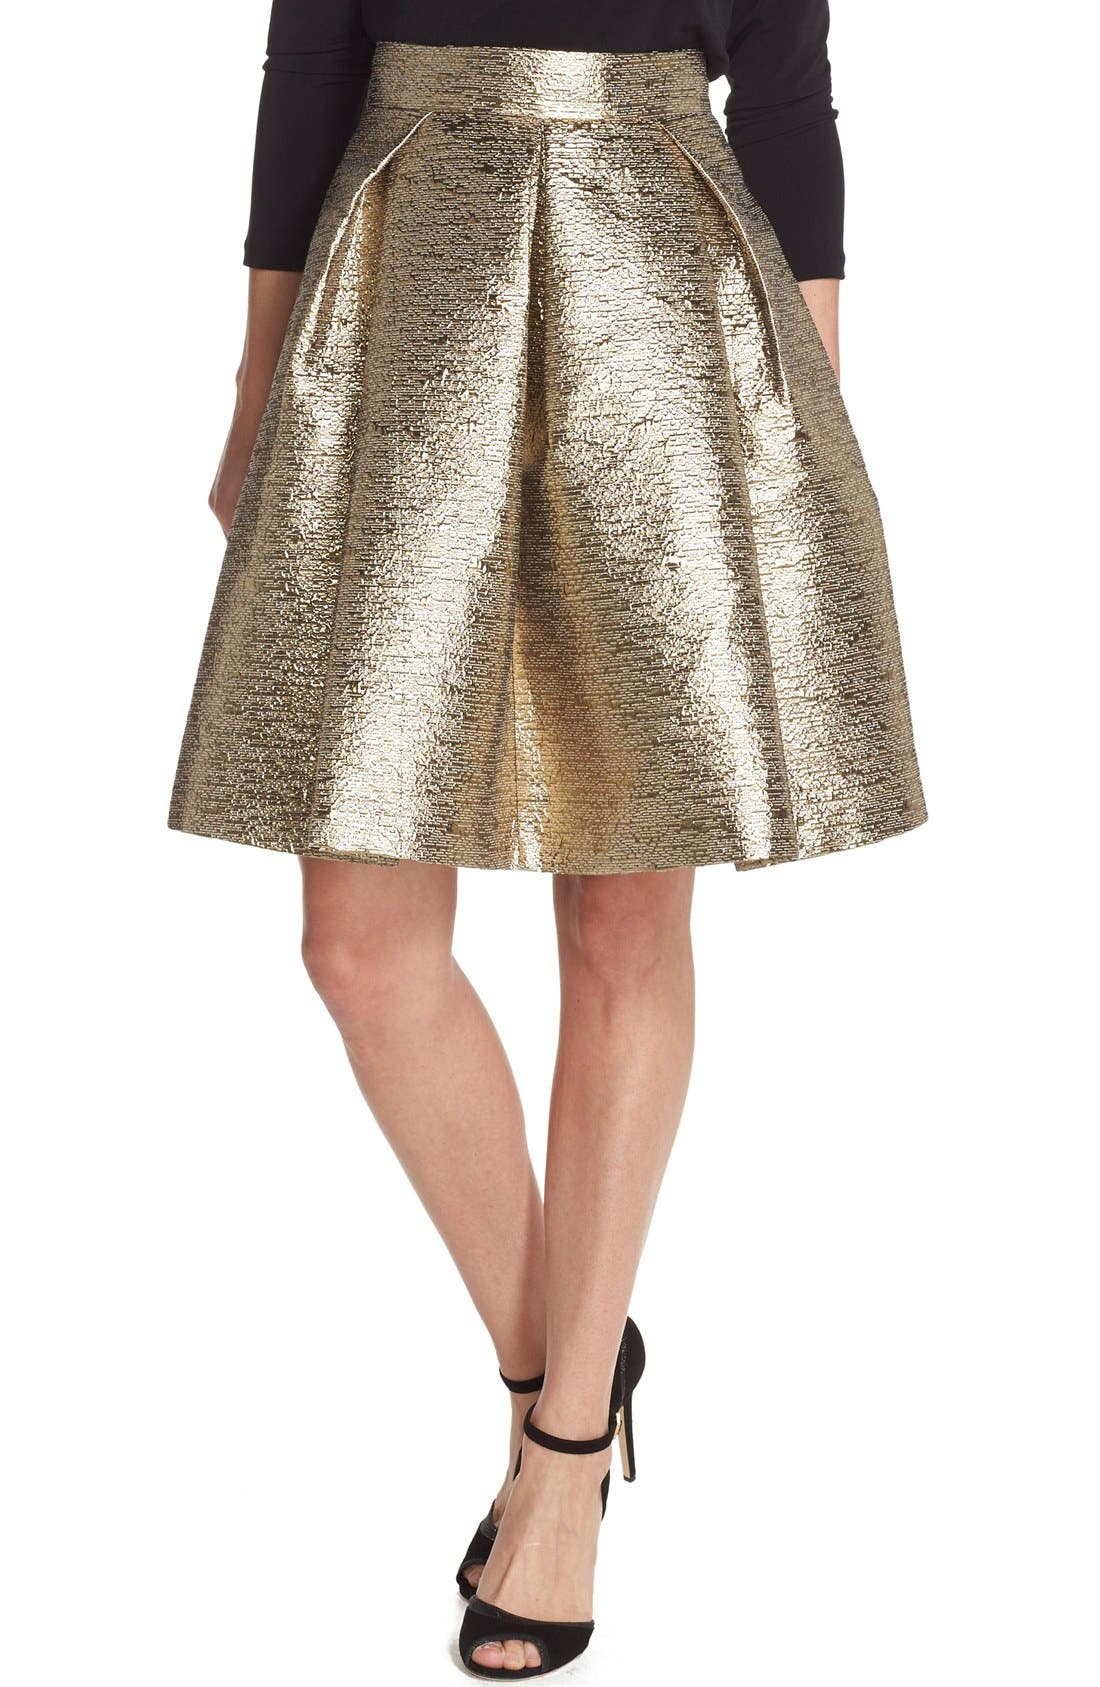 Alternate Image 1 Selected - Eliza J Metallic Jacquard Flared Skirt